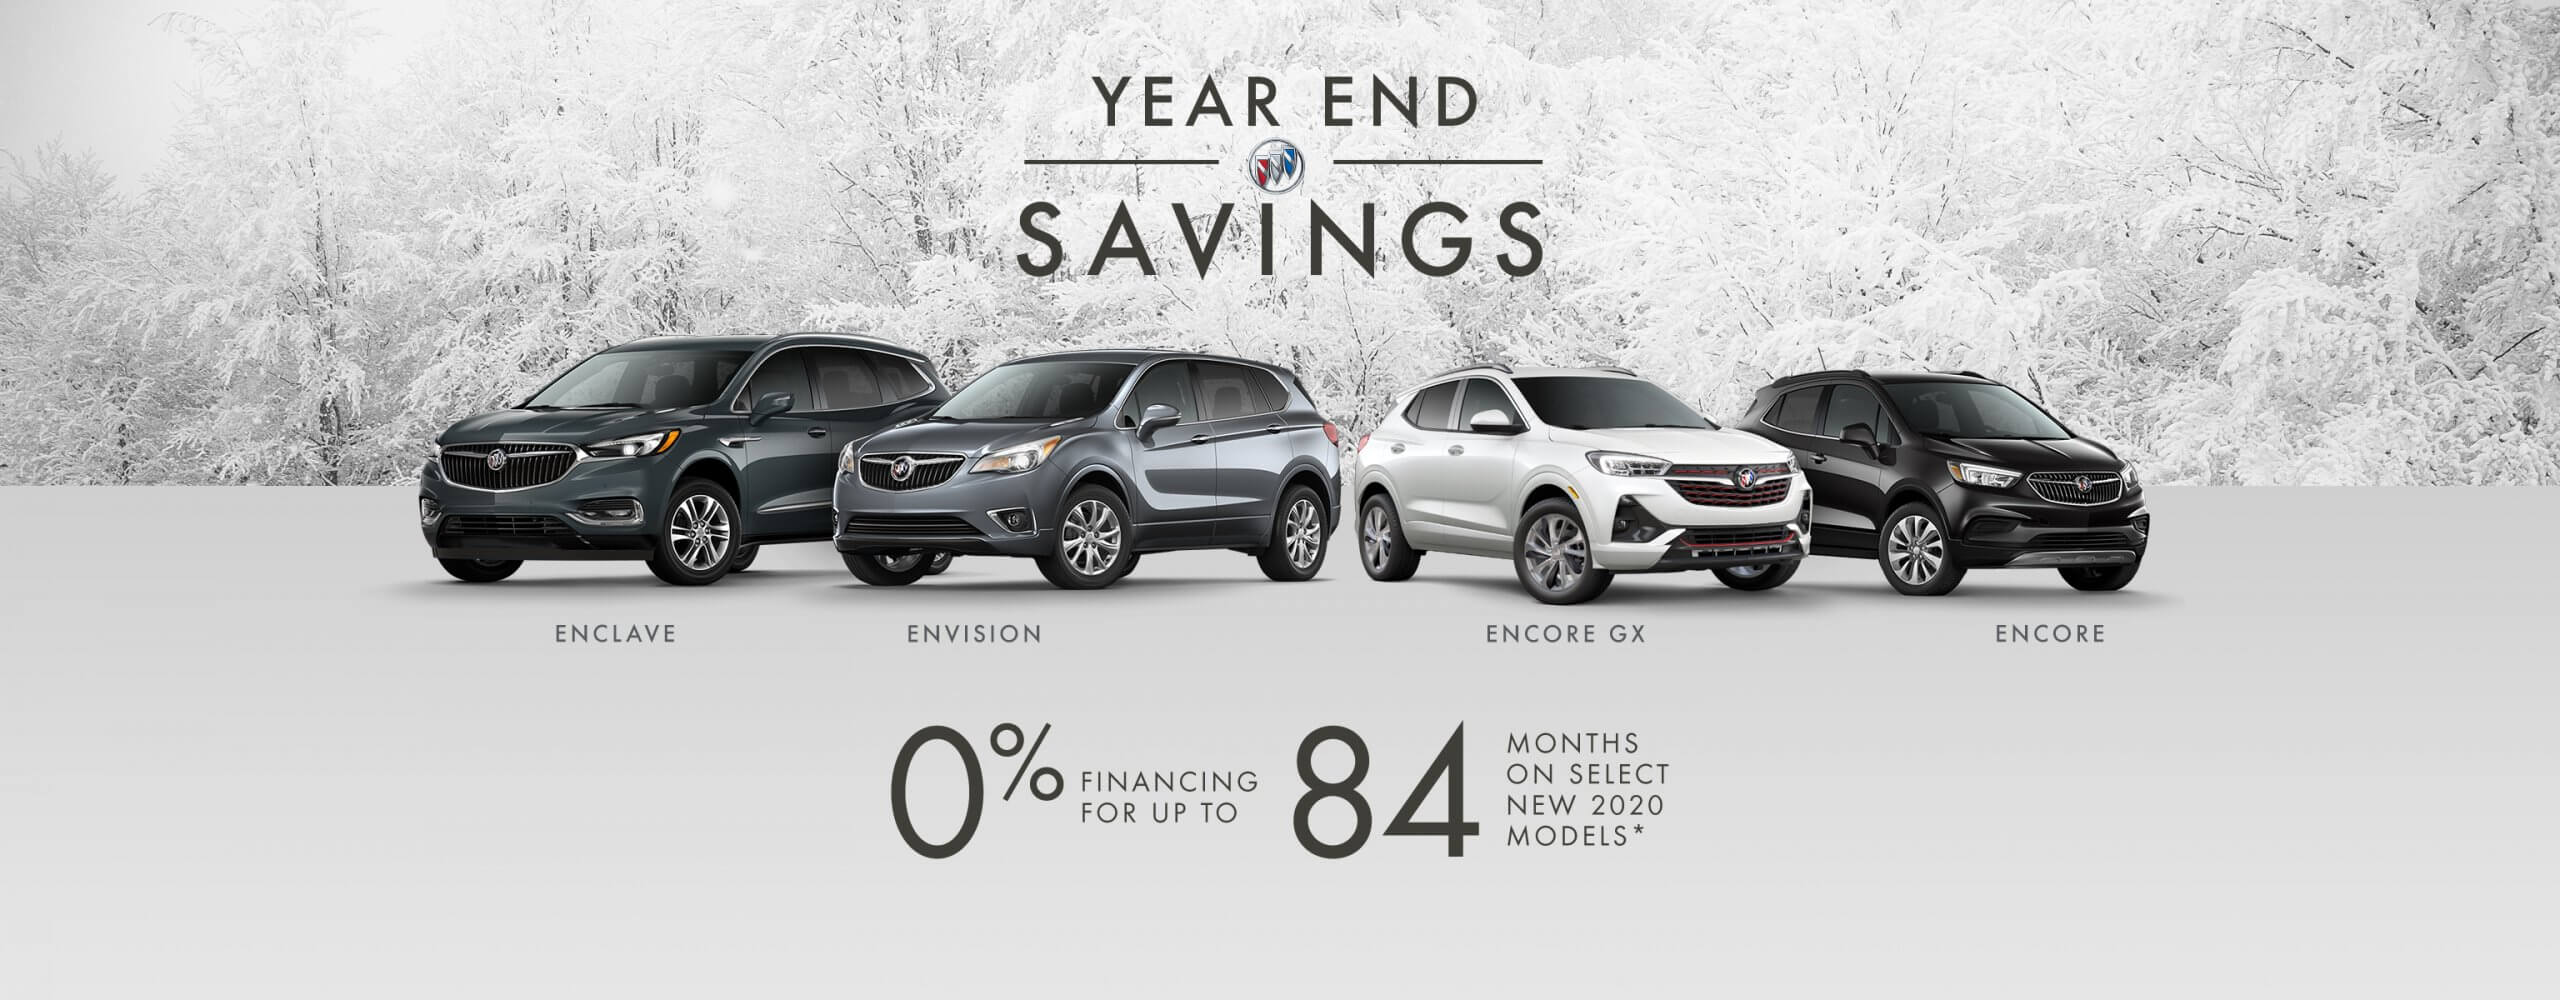 Year End Savings Buick